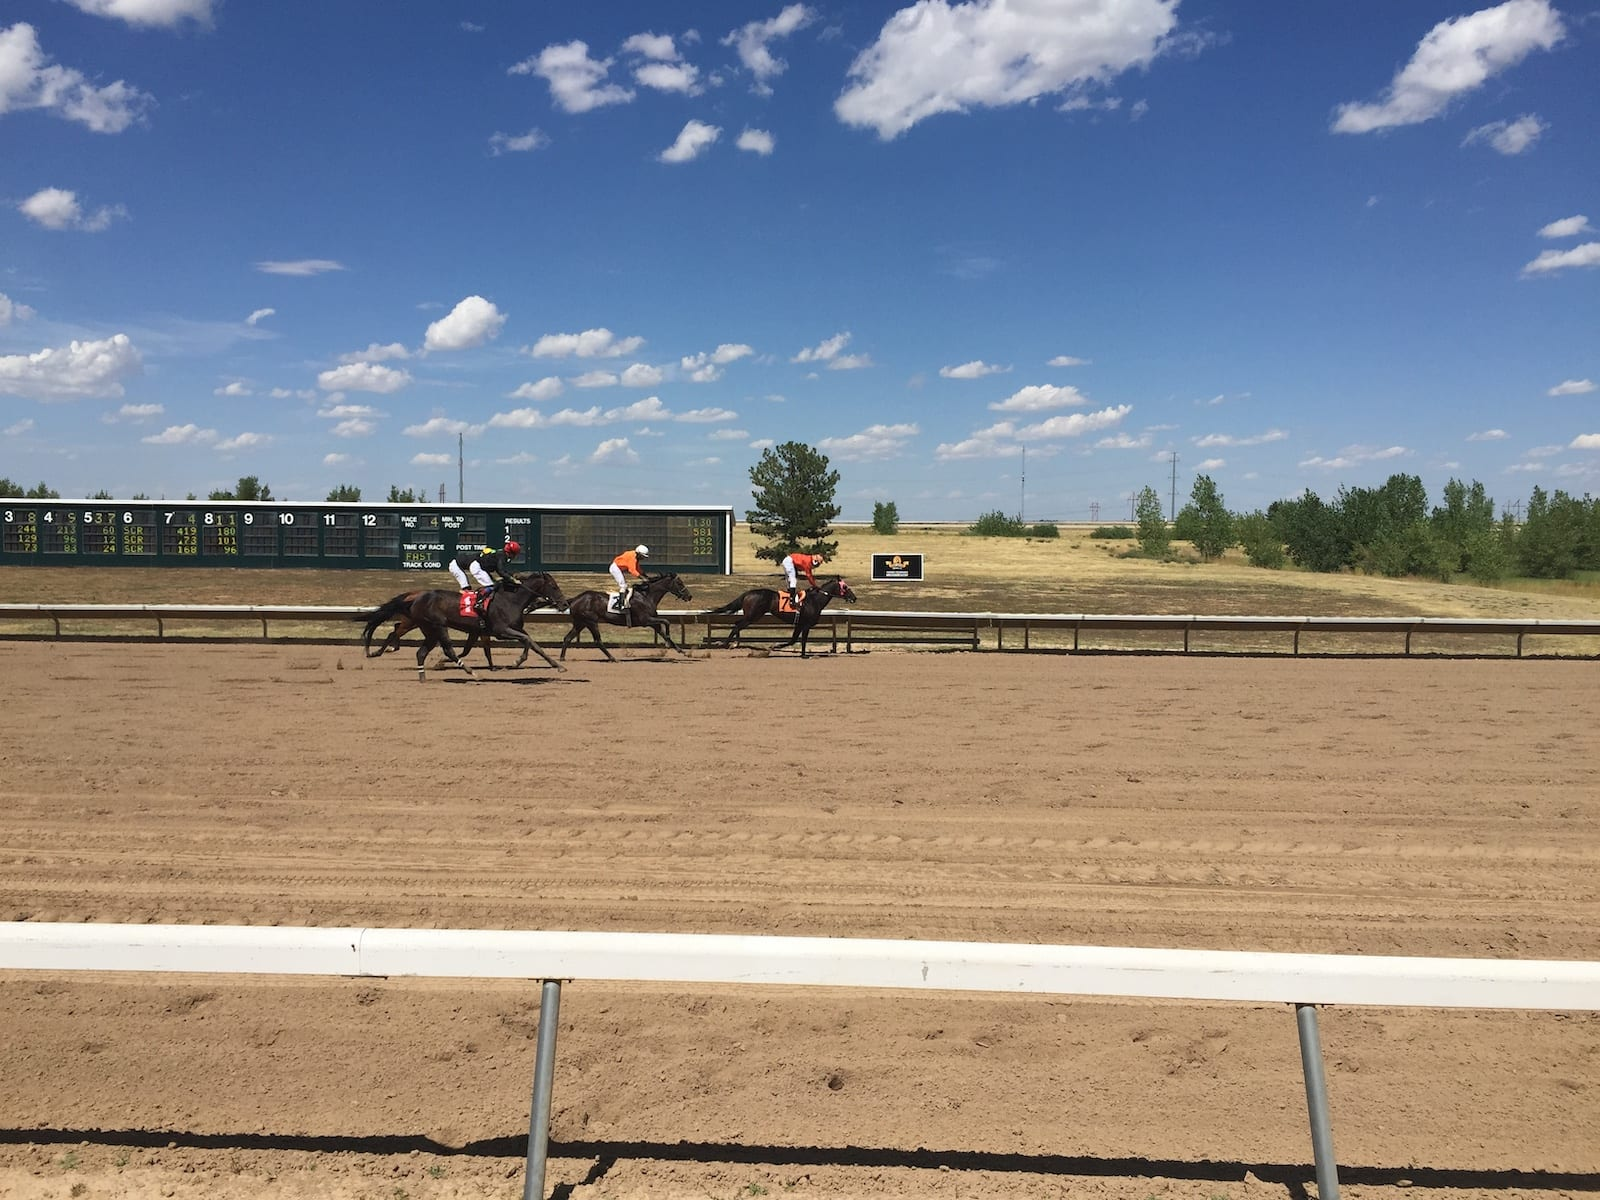 Horse Racing Arapahoe Park Racetrack Aurora CO Crossing Finish Line